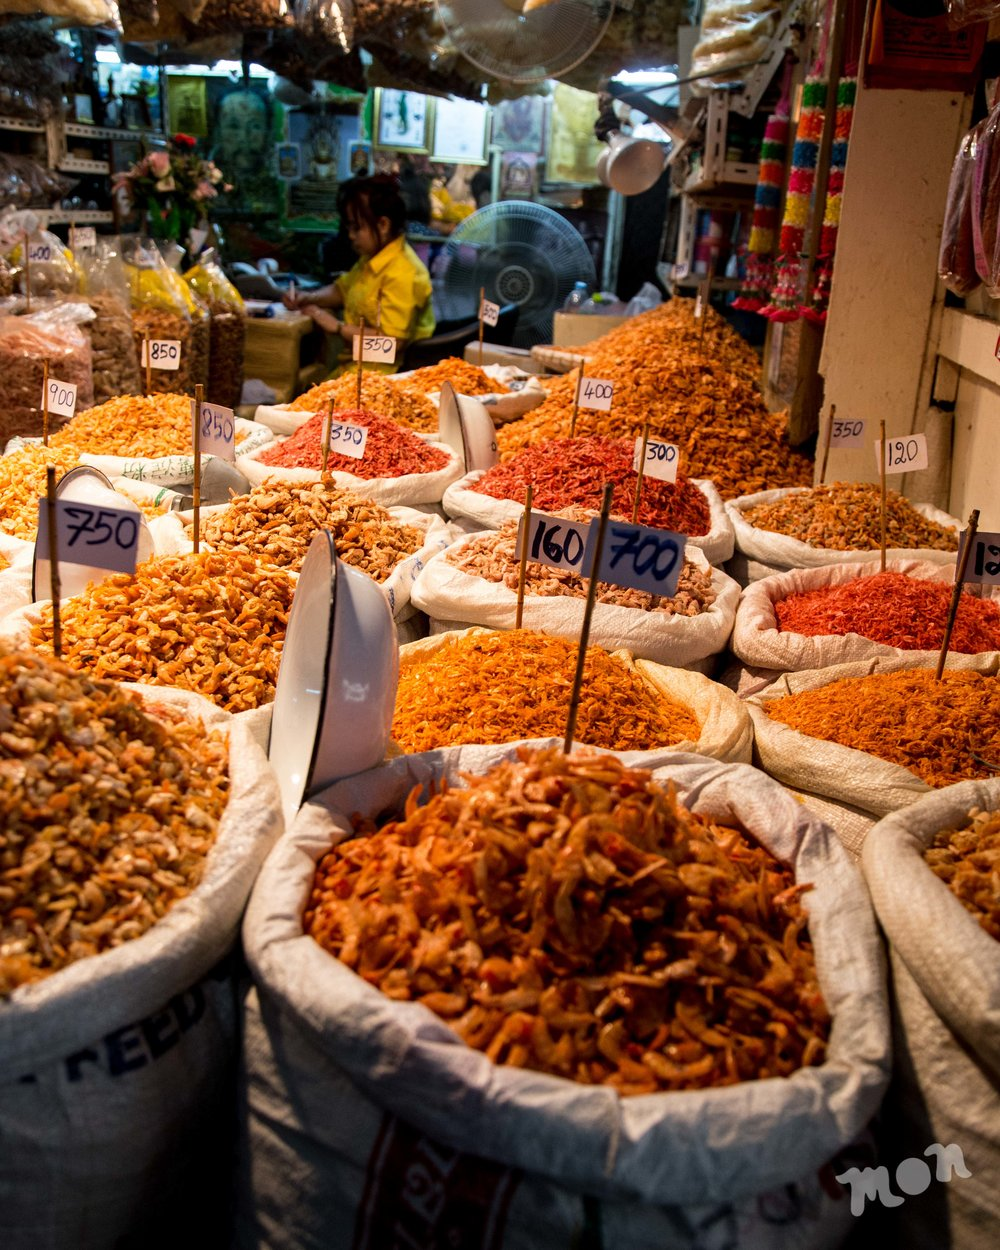 Every type of dried shrimp imaginable